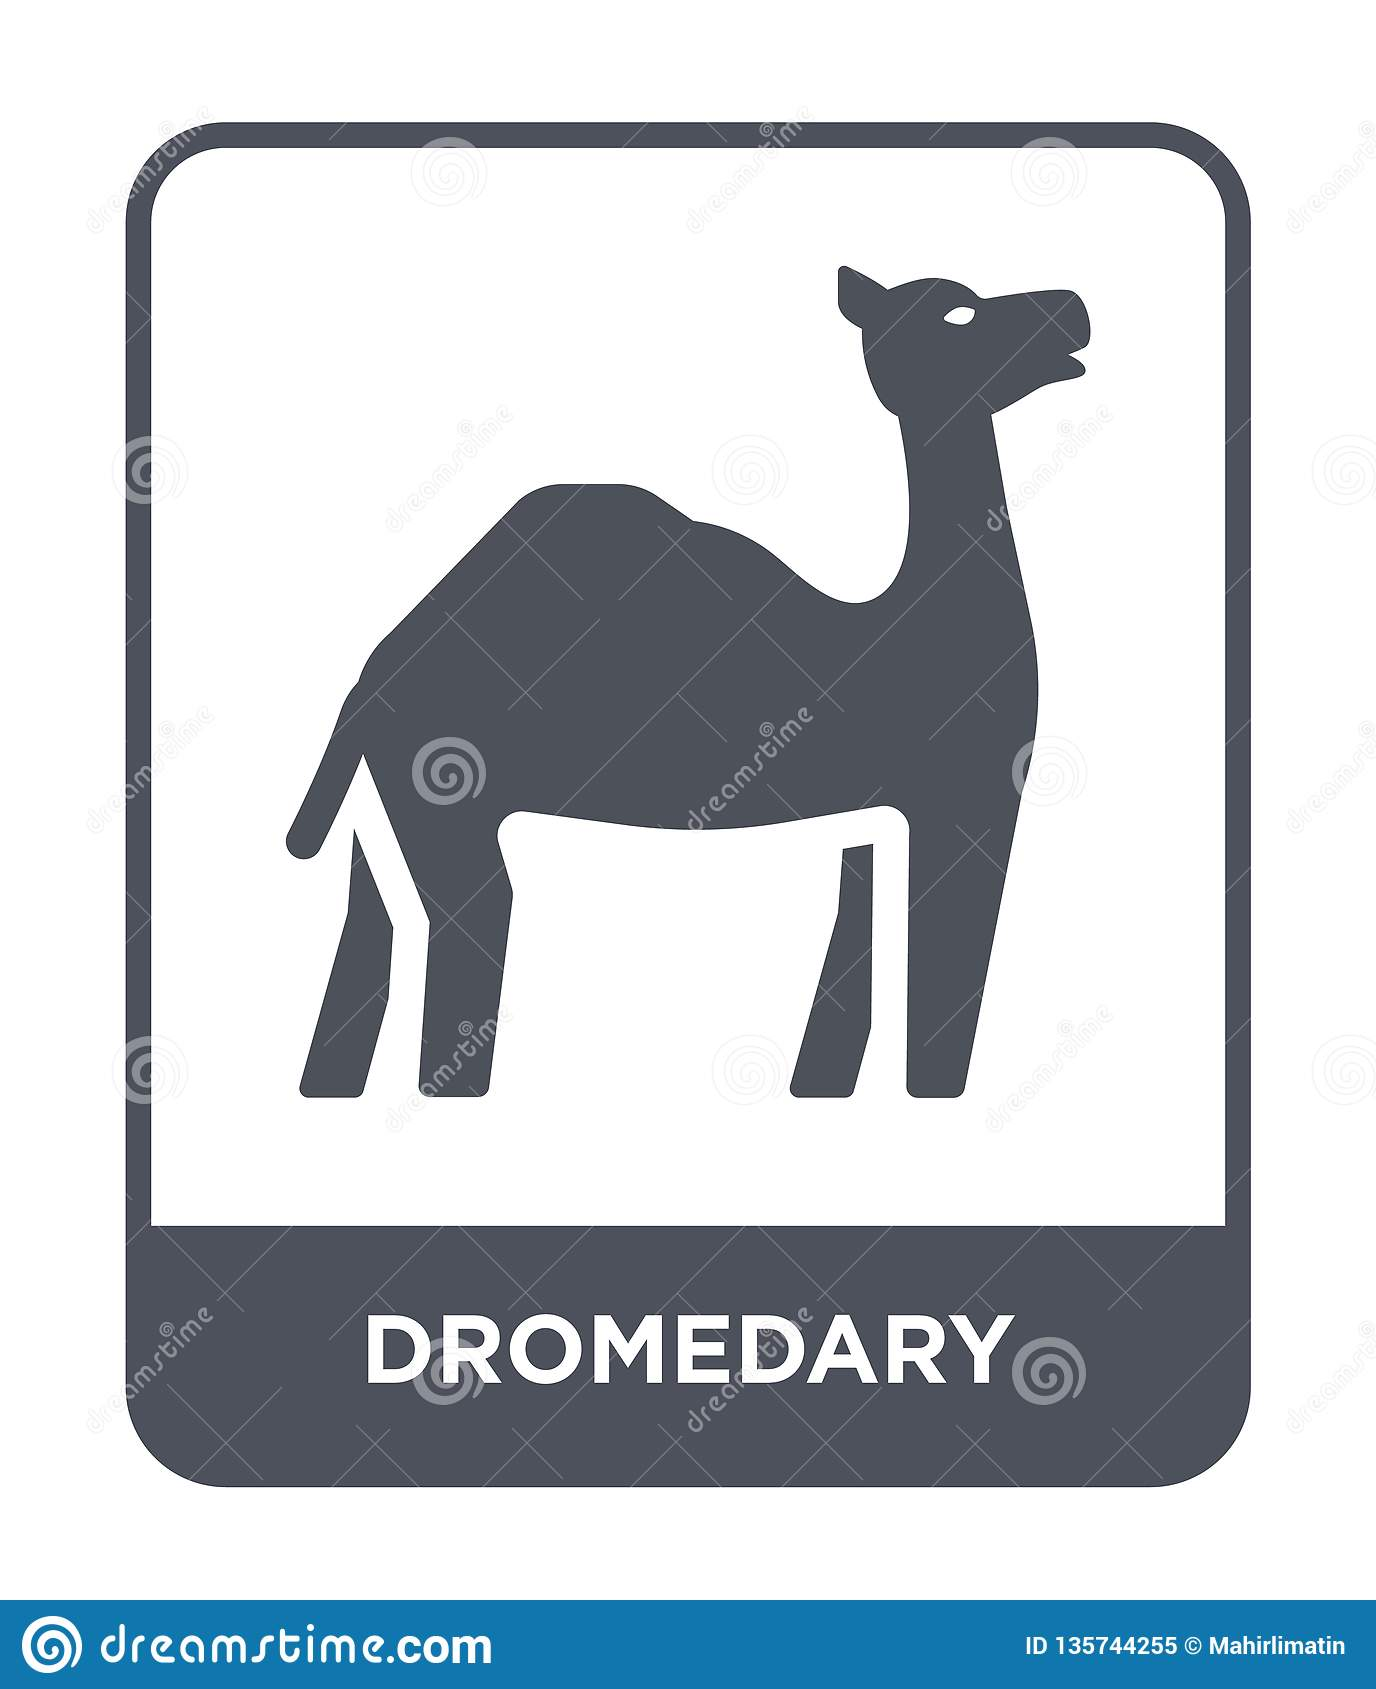 dromedary icon in trendy design style. dromedary icon isolated on white background. dromedary vector icon simple and modern flat